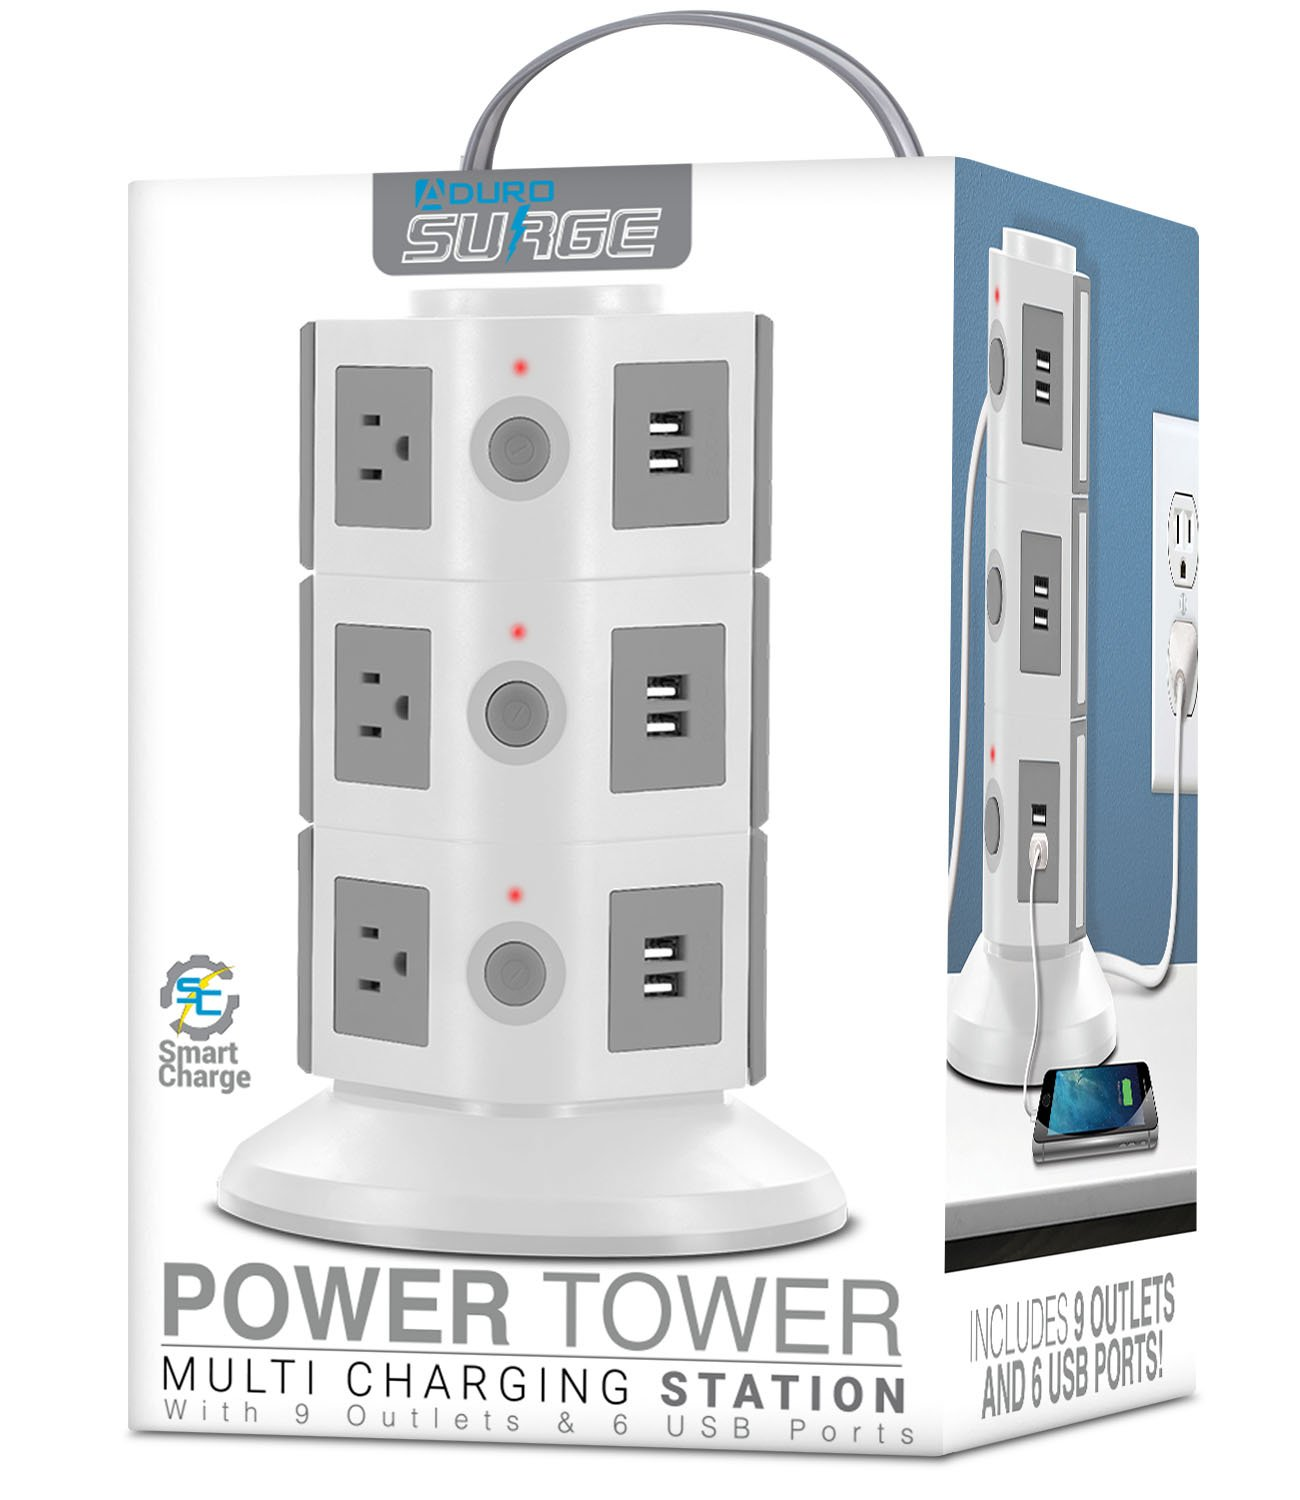 Aduro Surge Protector Power Tower Family Multi Charging Station - 9 Outlets and 6 USB Ports, Smart Charge Technology for iPhone, iPad, Galaxy Nexus (Black)